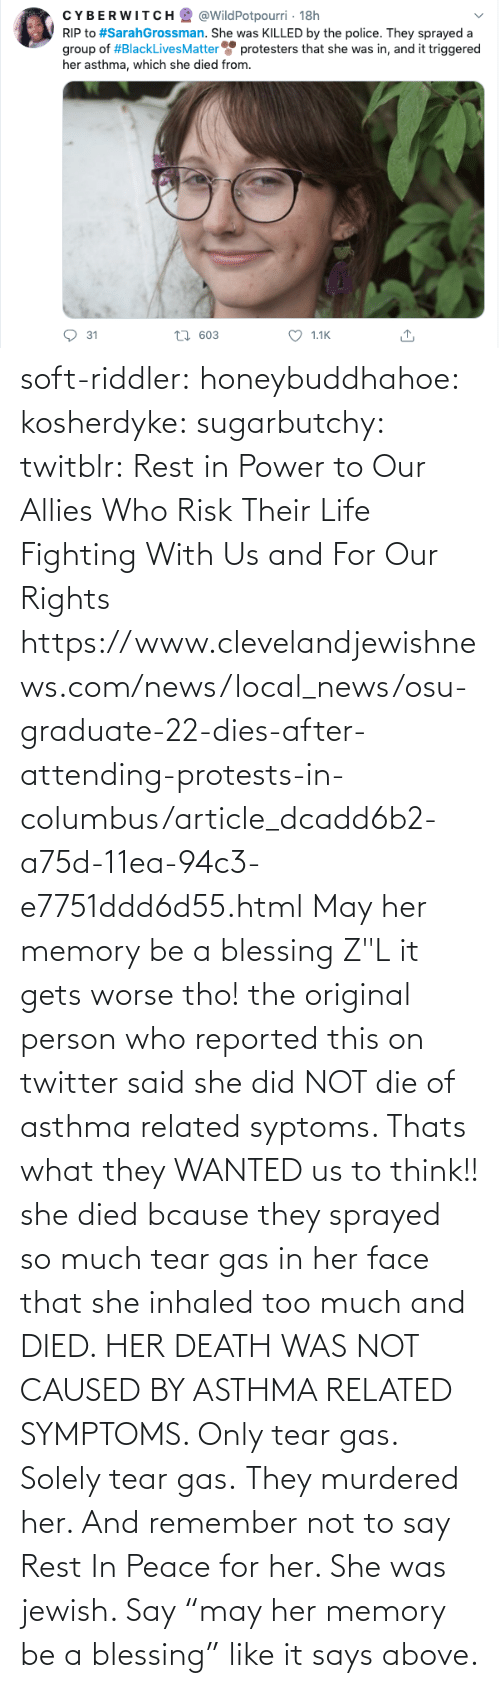 "person: soft-riddler:  honeybuddhahoe:  kosherdyke:  sugarbutchy:  twitblr: Rest in Power to Our Allies Who Risk Their Life Fighting With Us and For Our Rights https://www.clevelandjewishnews.com/news/local_news/osu-graduate-22-dies-after-attending-protests-in-columbus/article_dcadd6b2-a75d-11ea-94c3-e7751ddd6d55.html    May her memory be a blessing Z""L  it gets worse tho! the original person who reported this on twitter said she did NOT die of asthma related syptoms. Thats what they WANTED us to think!! she died bcause they sprayed so much tear gas in her face that she inhaled too much and DIED. HER DEATH WAS NOT CAUSED BY ASTHMA RELATED SYMPTOMS. Only tear gas. Solely tear gas. They murdered her.     And remember not to say Rest In Peace for her. She was jewish. Say ""may her memory be a blessing"" like it says above."